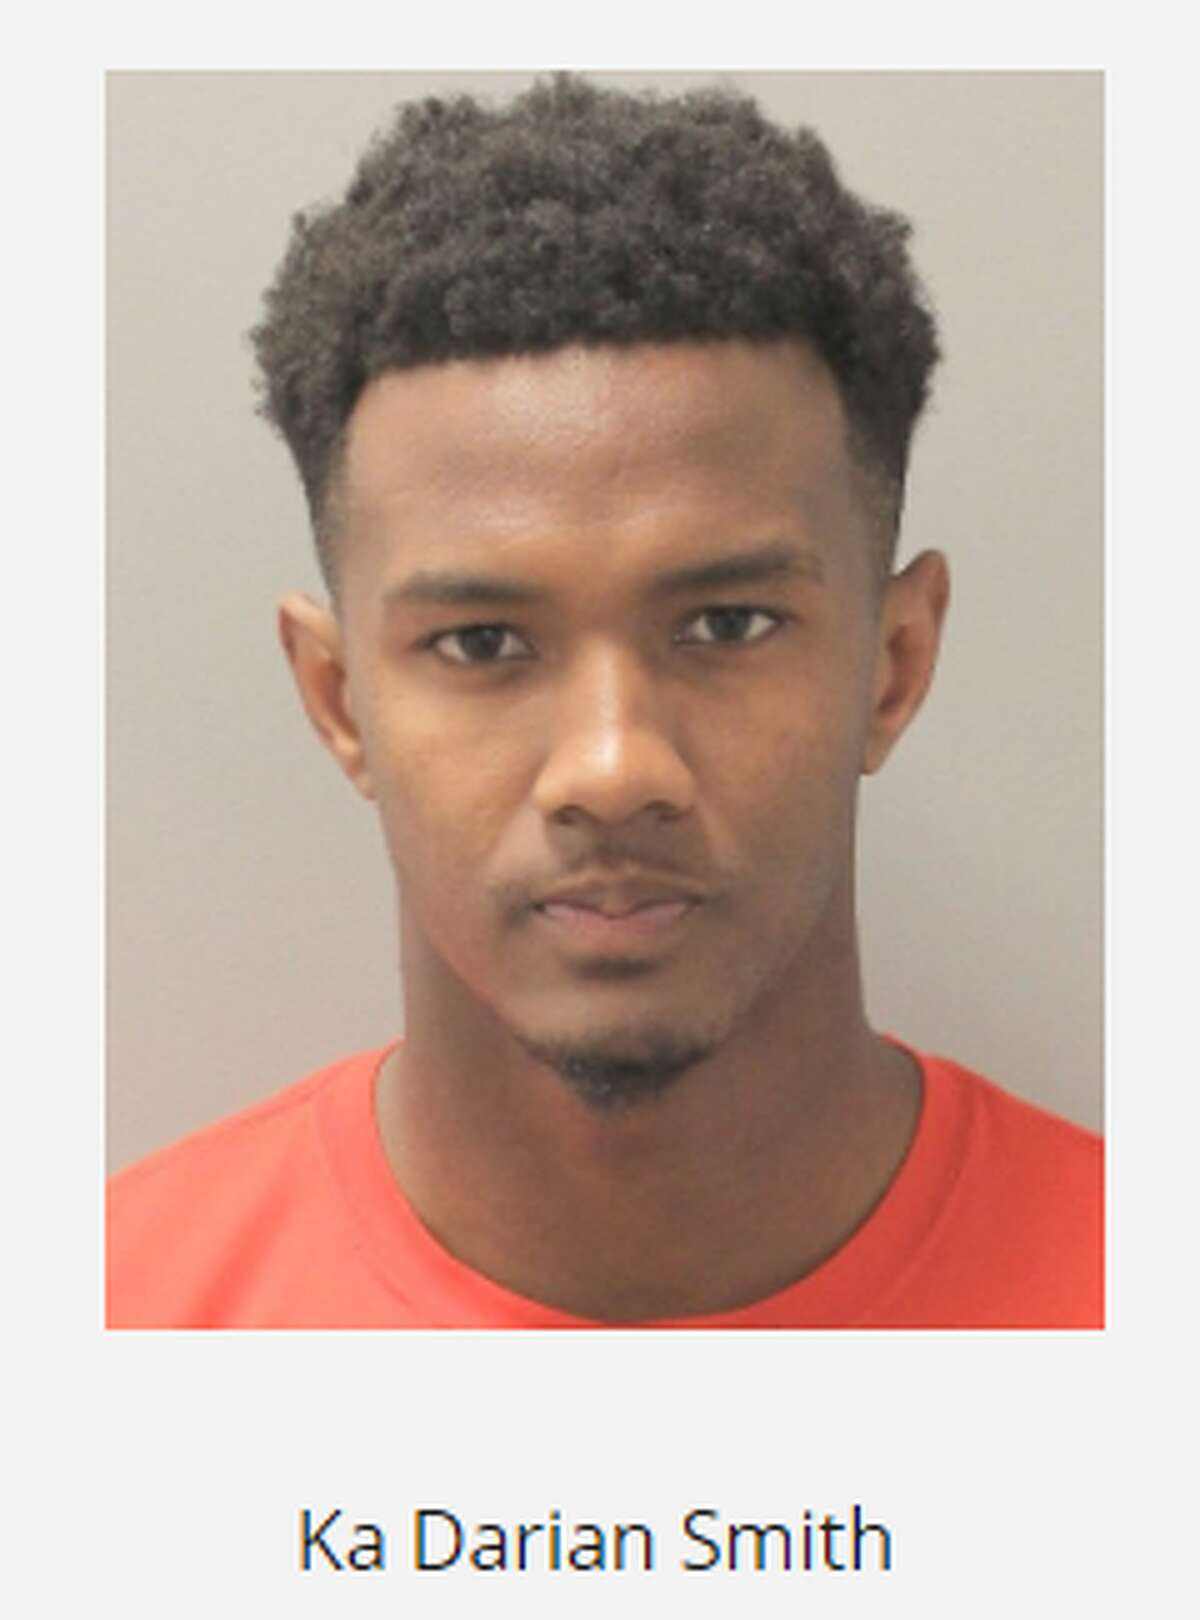 University of Houston cornerback Ka'Darian Smith was arrested and charged with aggravated assault on Nov. 6, 2019.